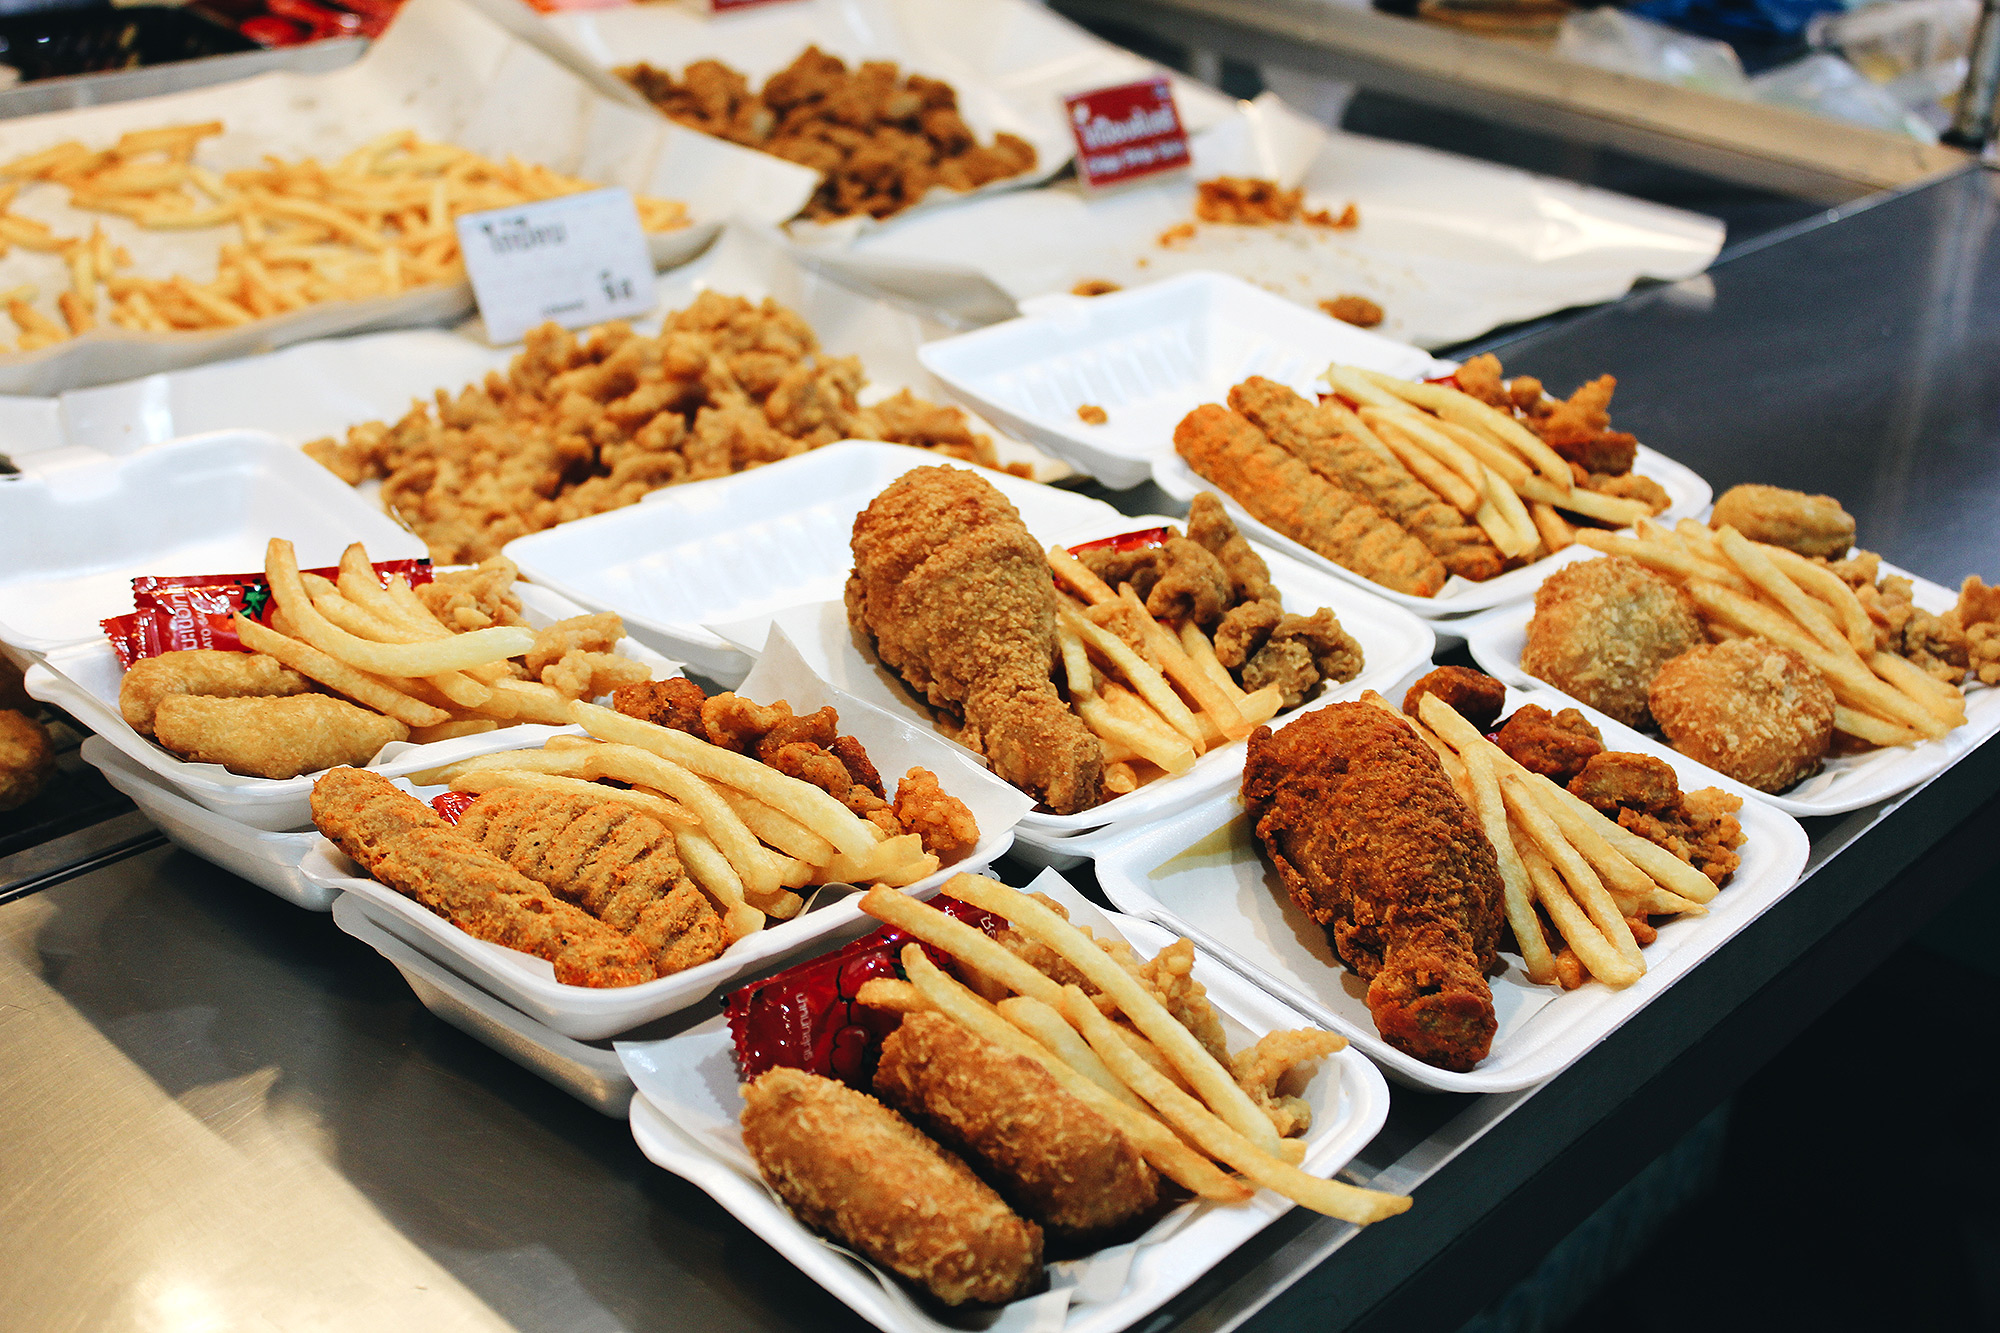 Variety Of Fast Food On Table